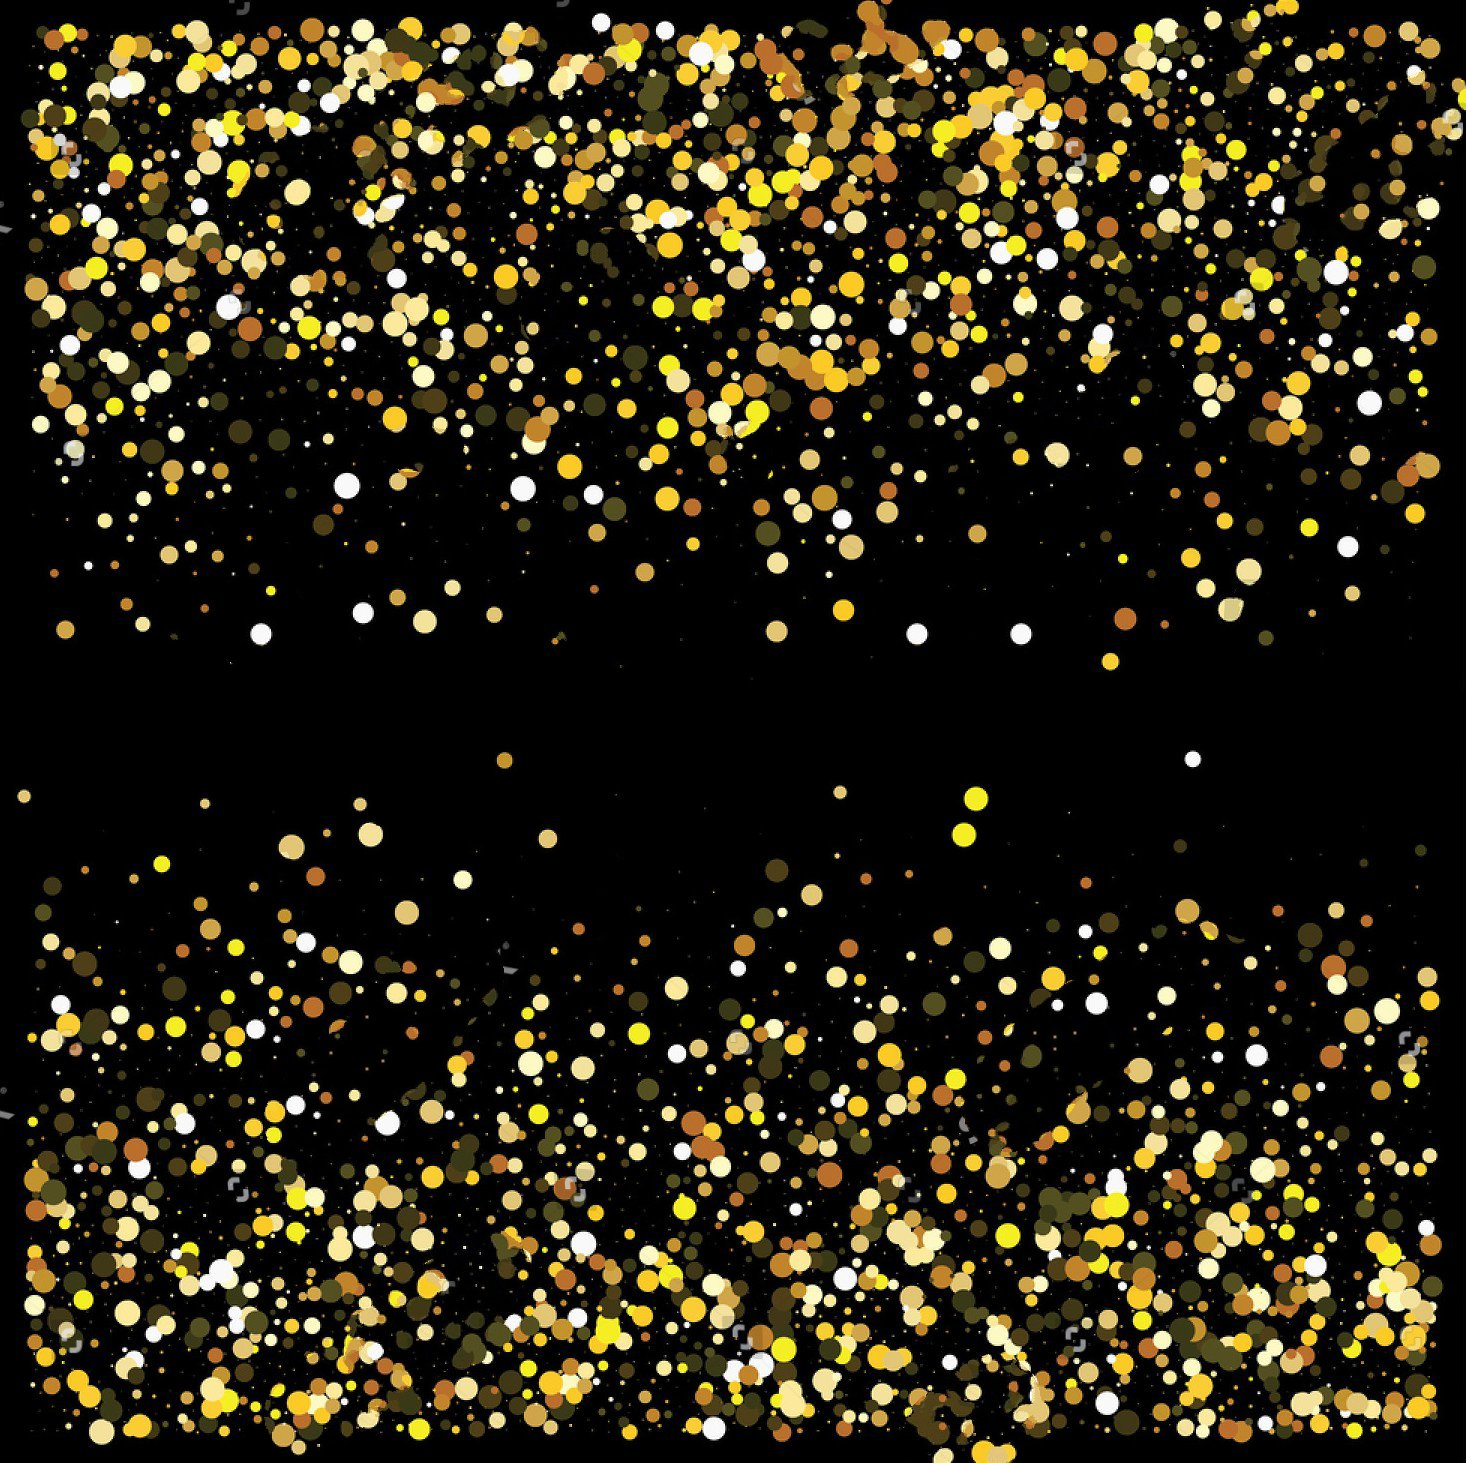 Gold glitter background Royalty Free Vector Image